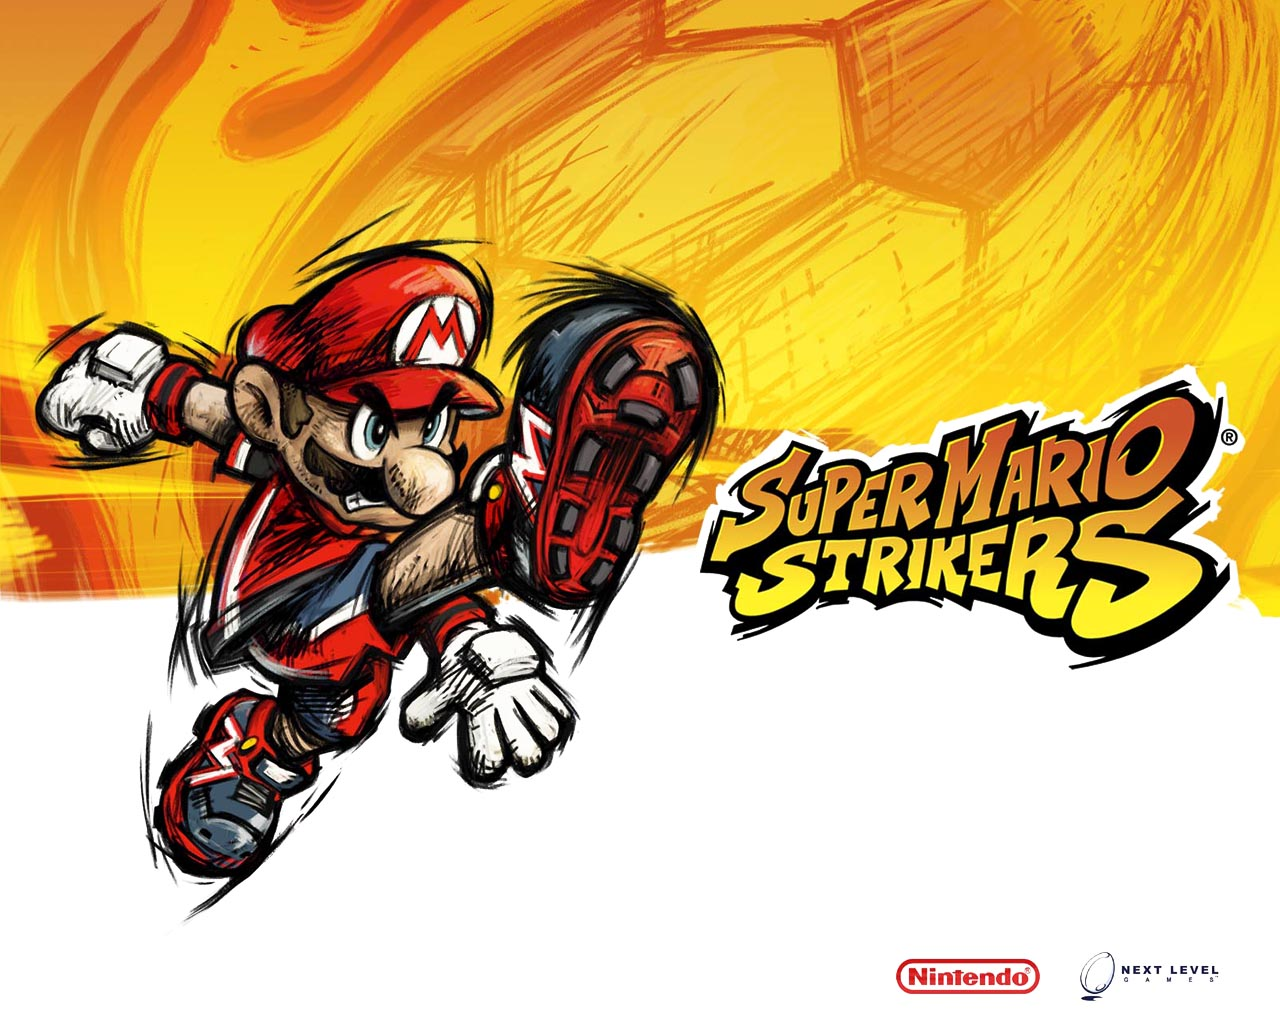 super_mario_strikers_image_01_1280×1024.jpg